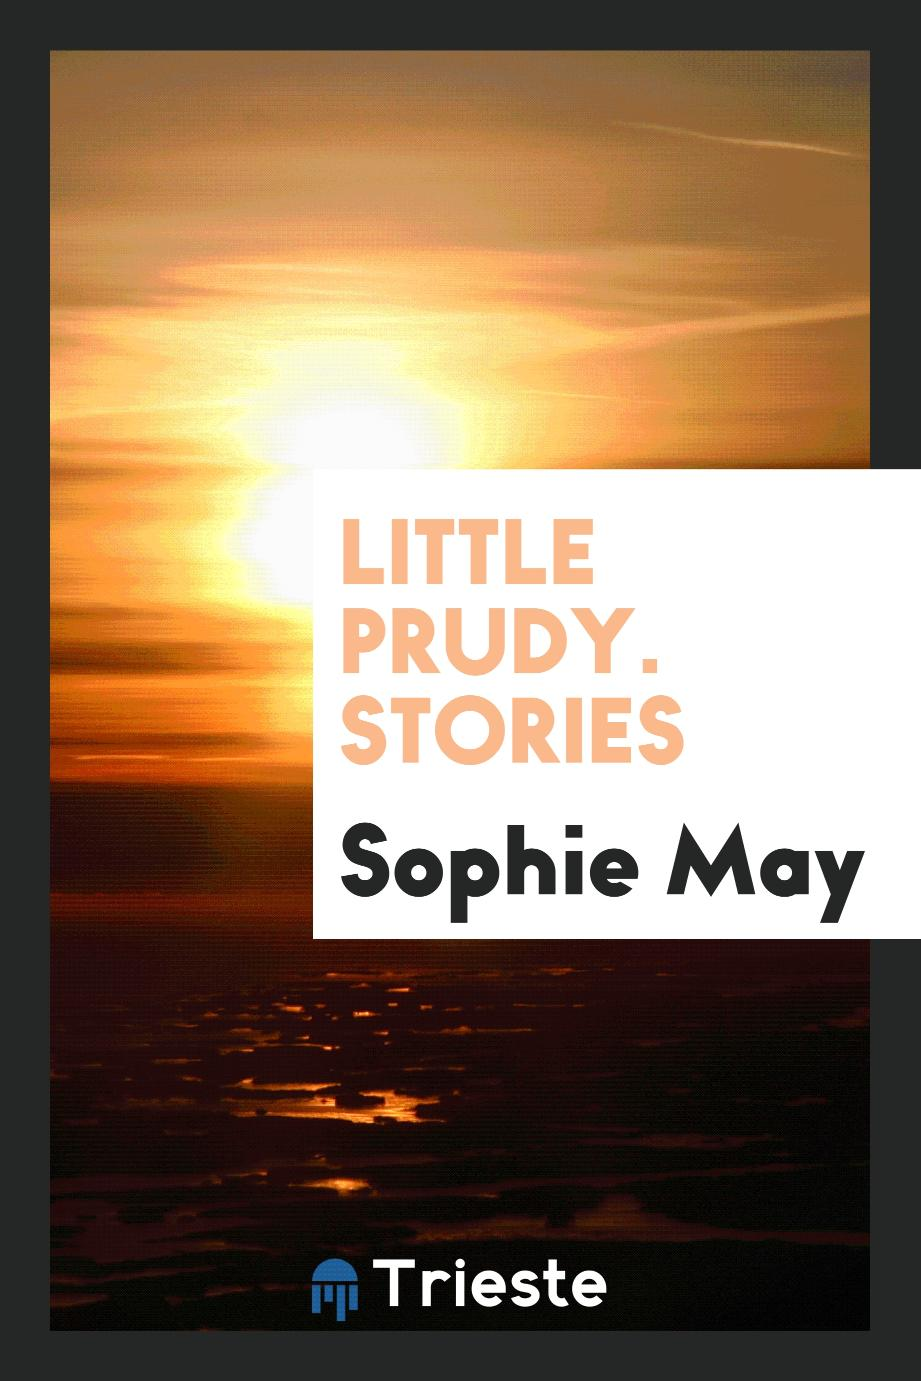 Little Prudy. Stories